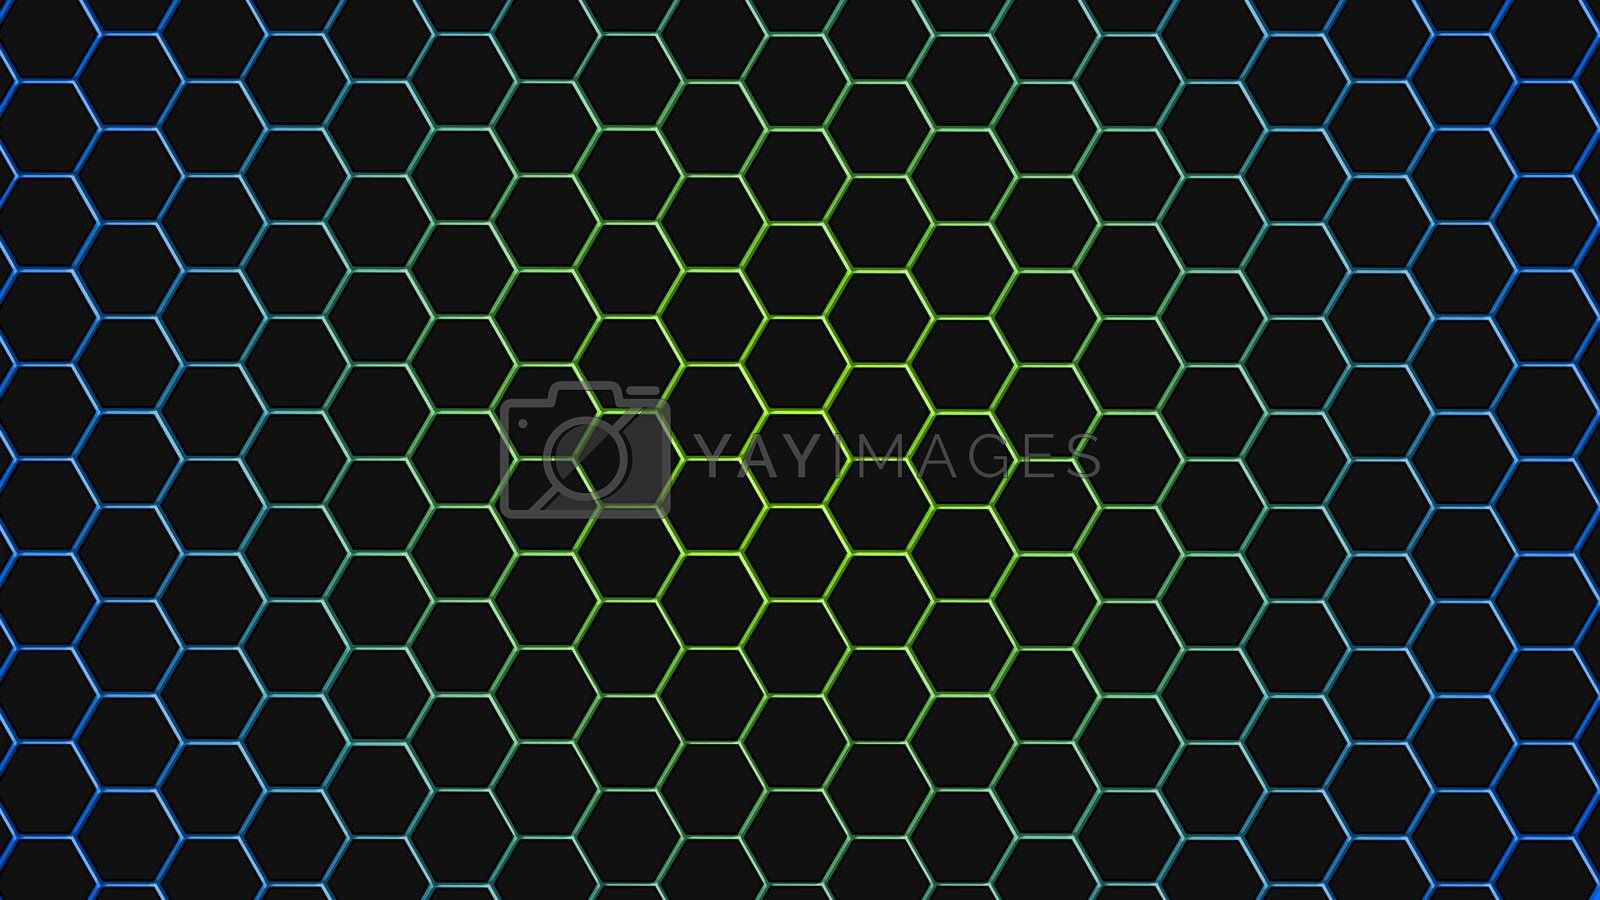 Green and blue hexagonal texture. Abstract background for design.